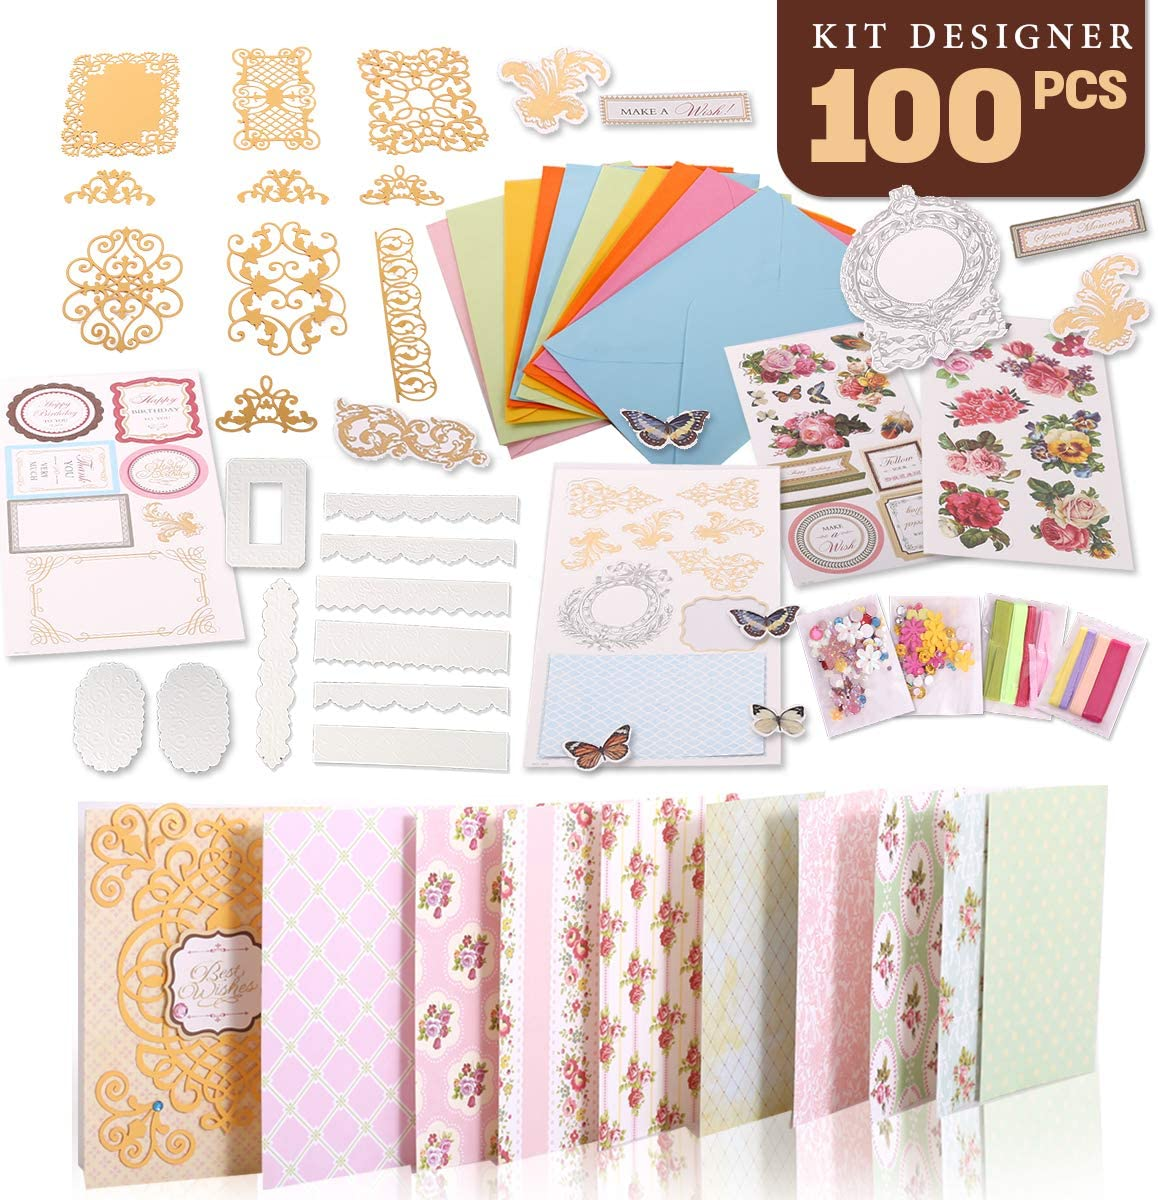 Quality Real Flower Card Making Kit /& Embellishments